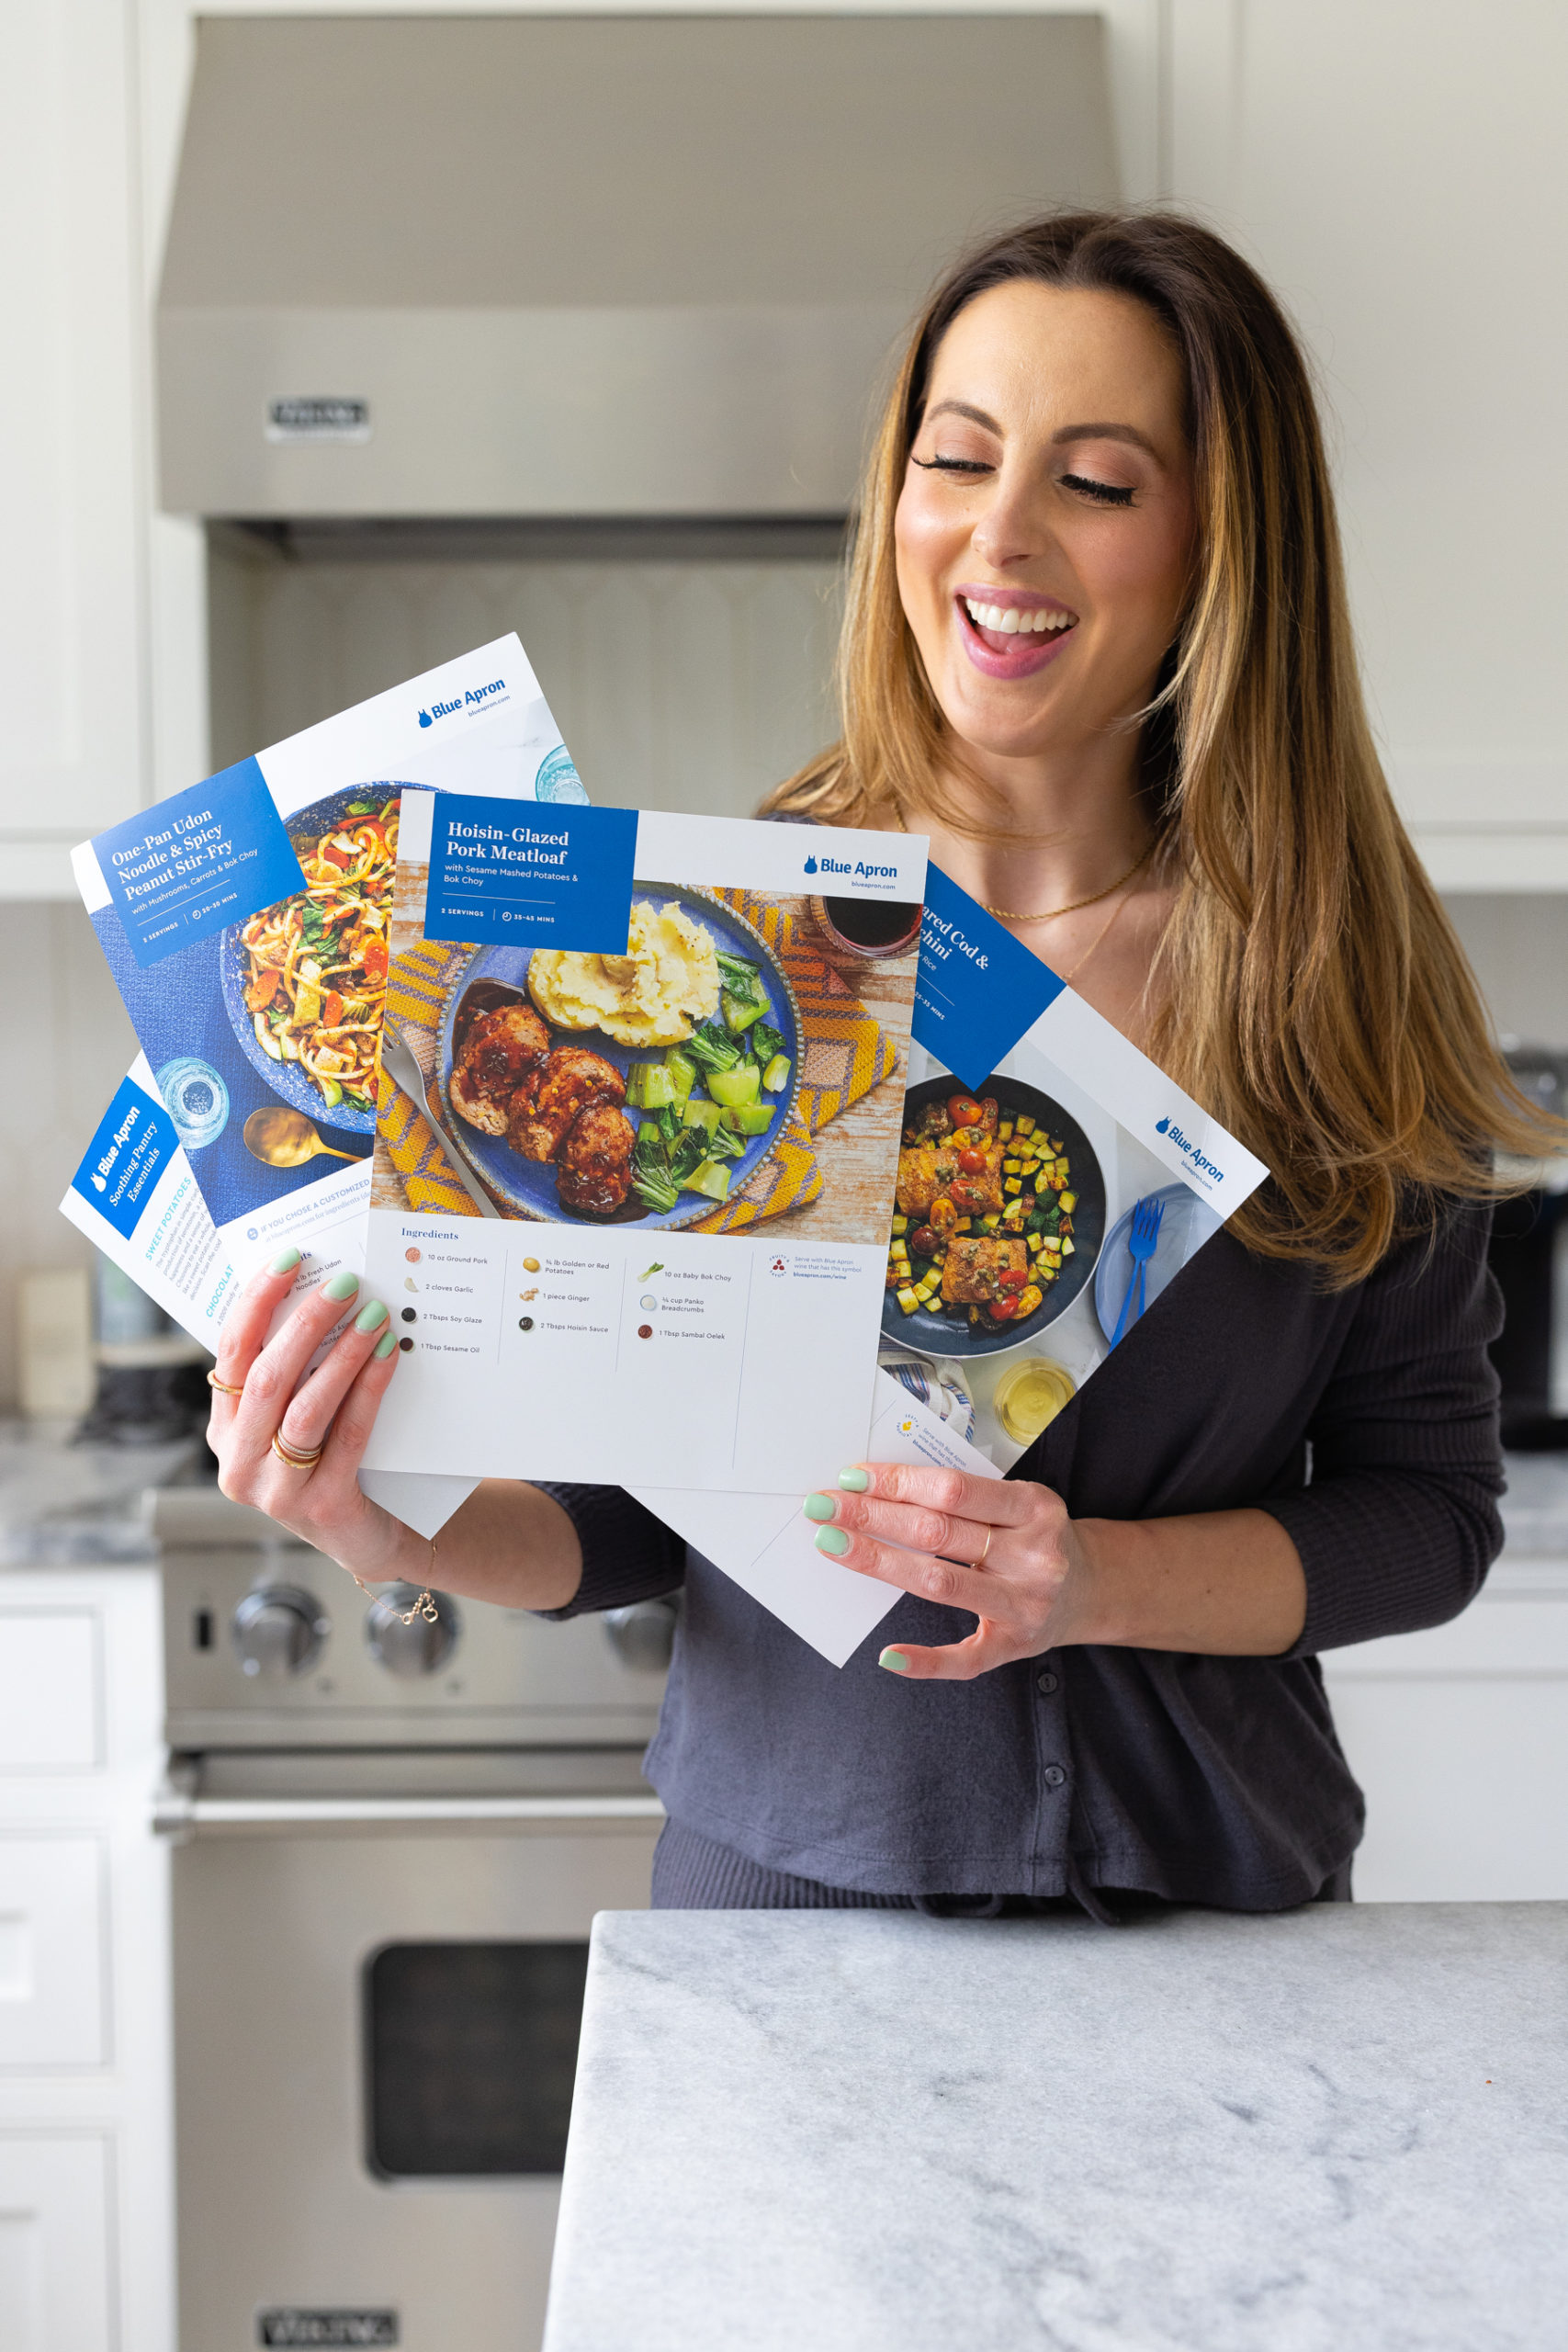 Eva Amurri shares how Blue Apron is helping her get out of her cooking rut